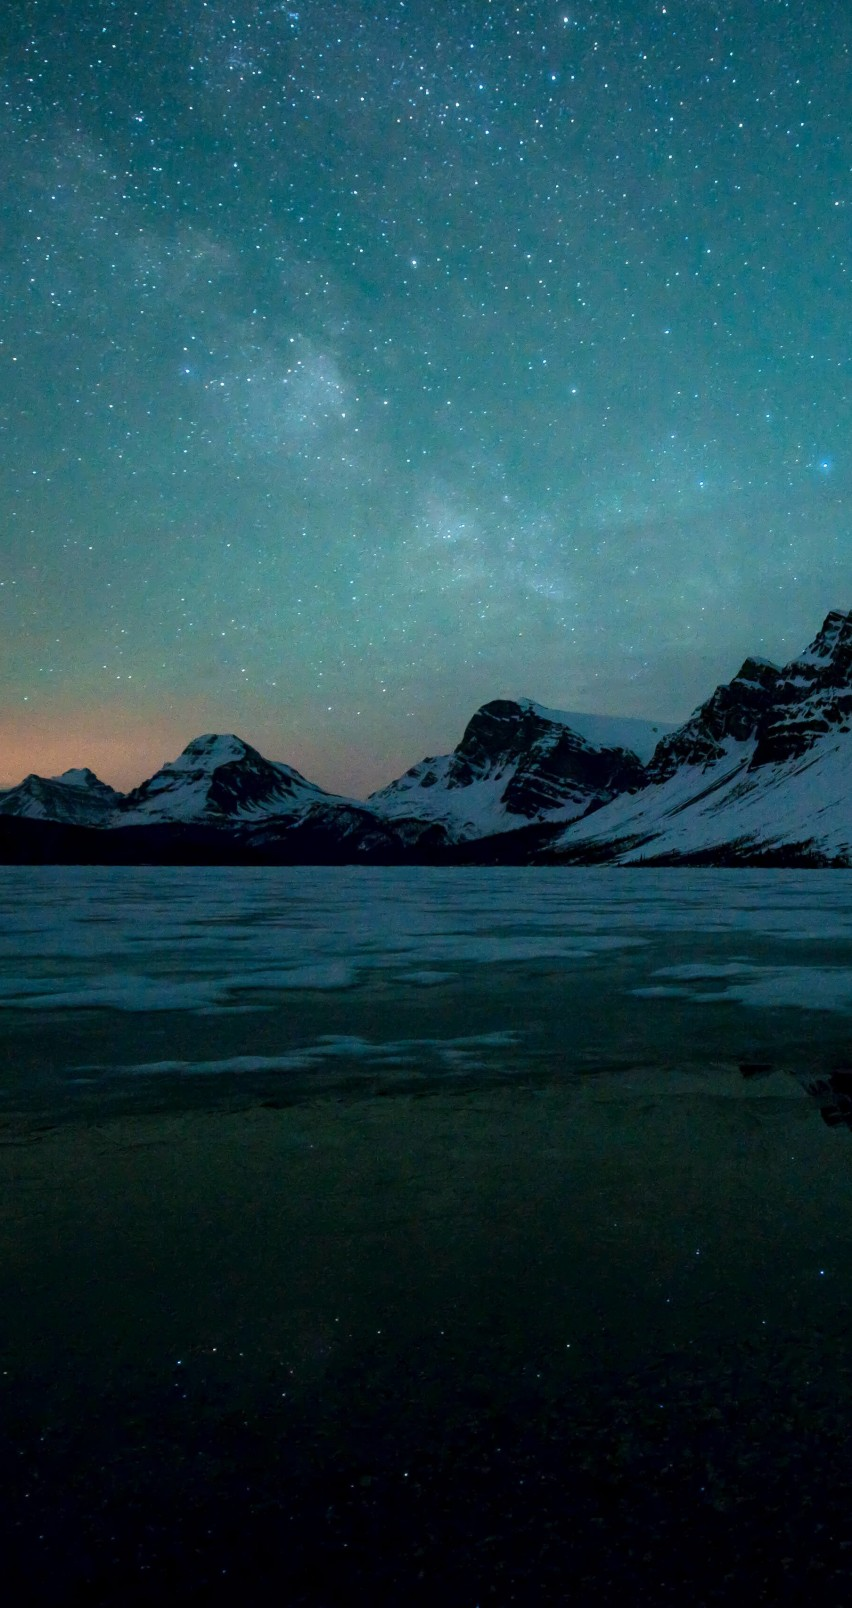 Milky Way over Bow Lake, Alberta, Canada Wallpaper for Apple iPhone 6 / 6s